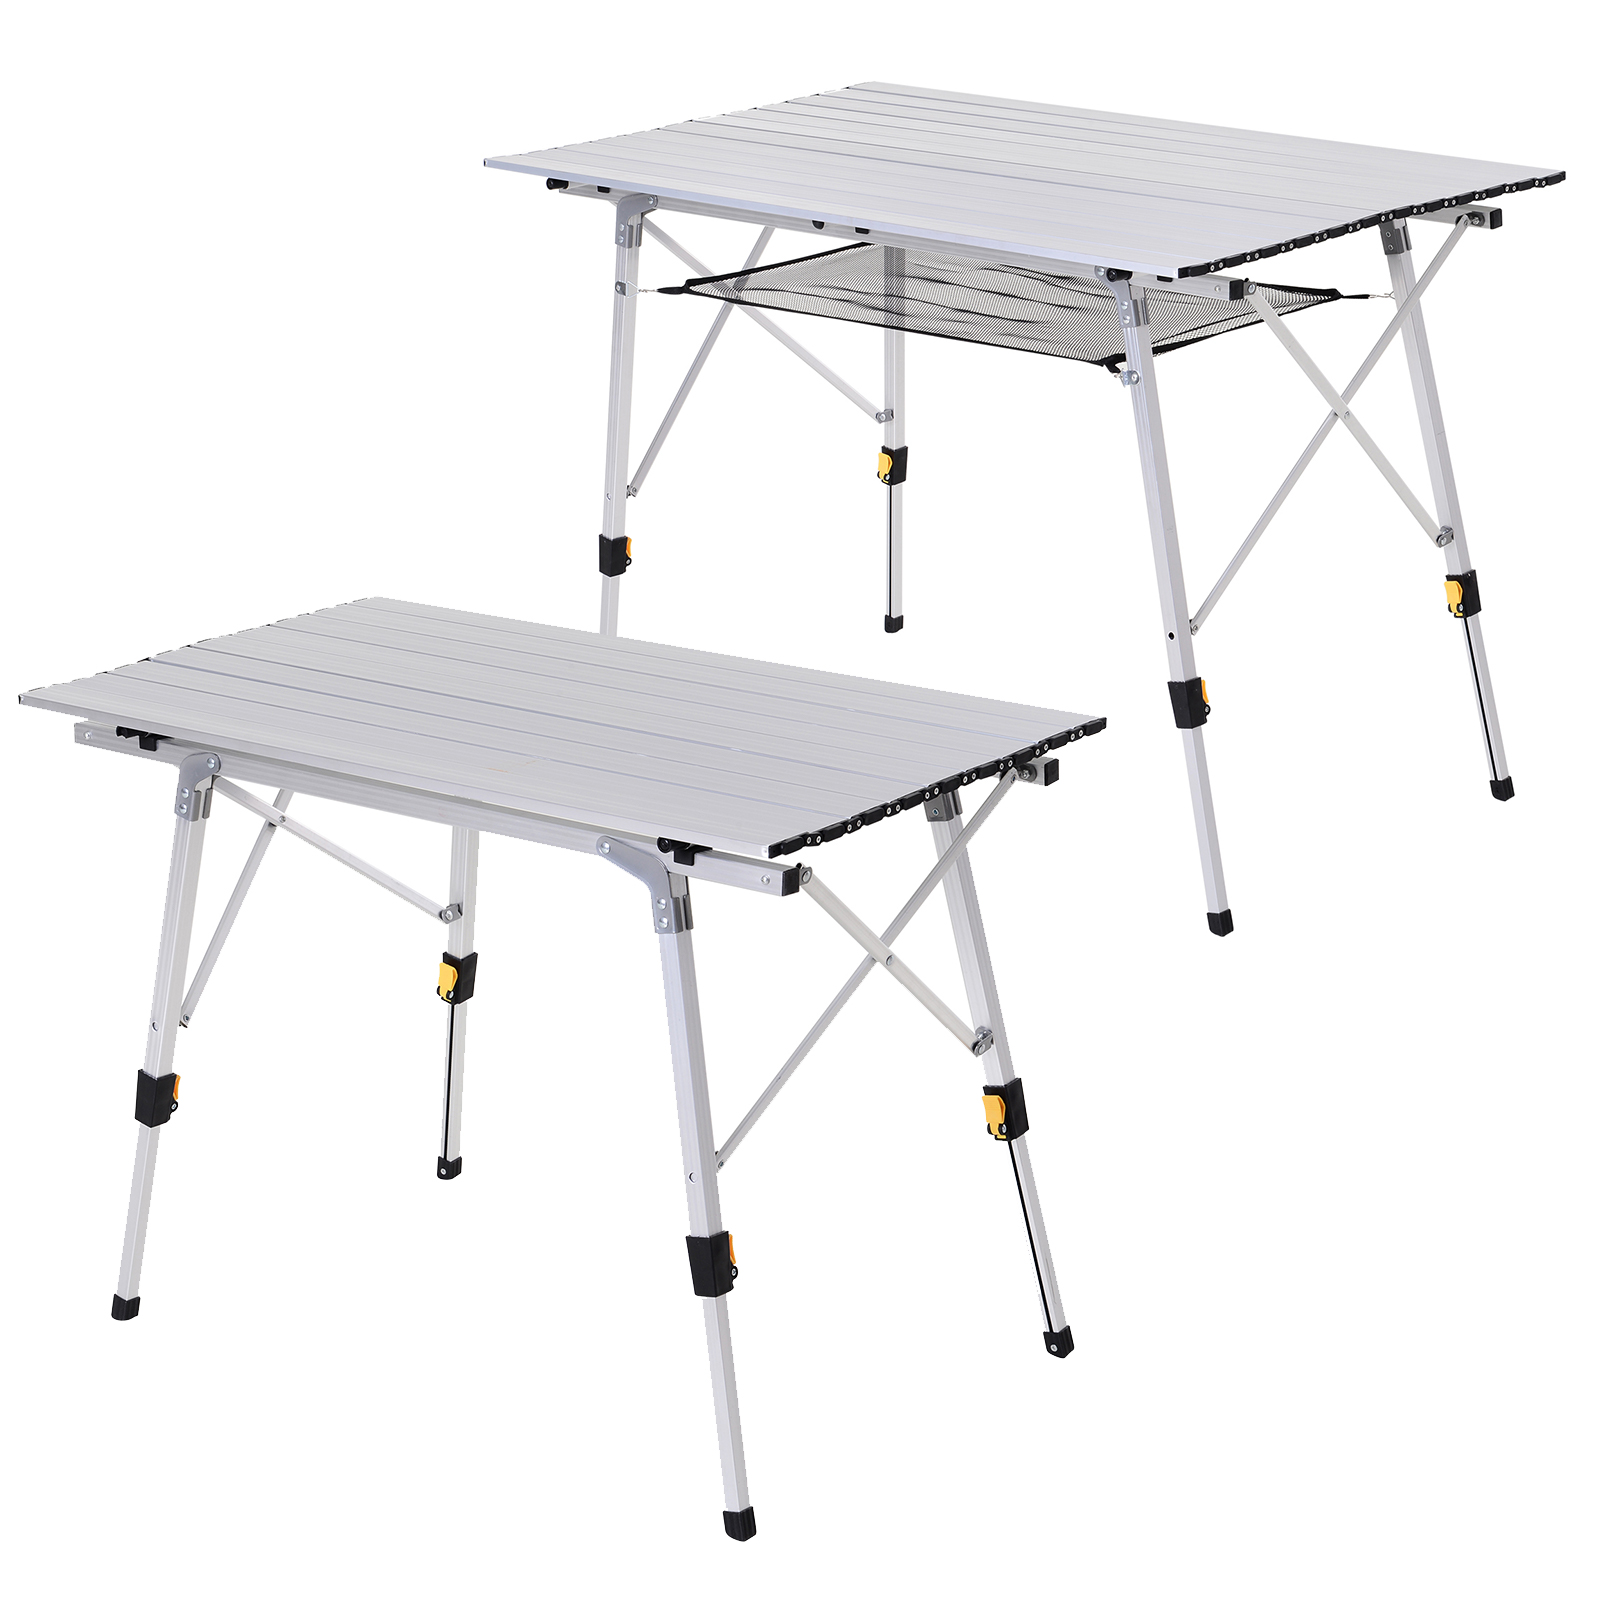 - Portable Roll-up Aluminium Folding Picnic Table Outdoor BBQ Party